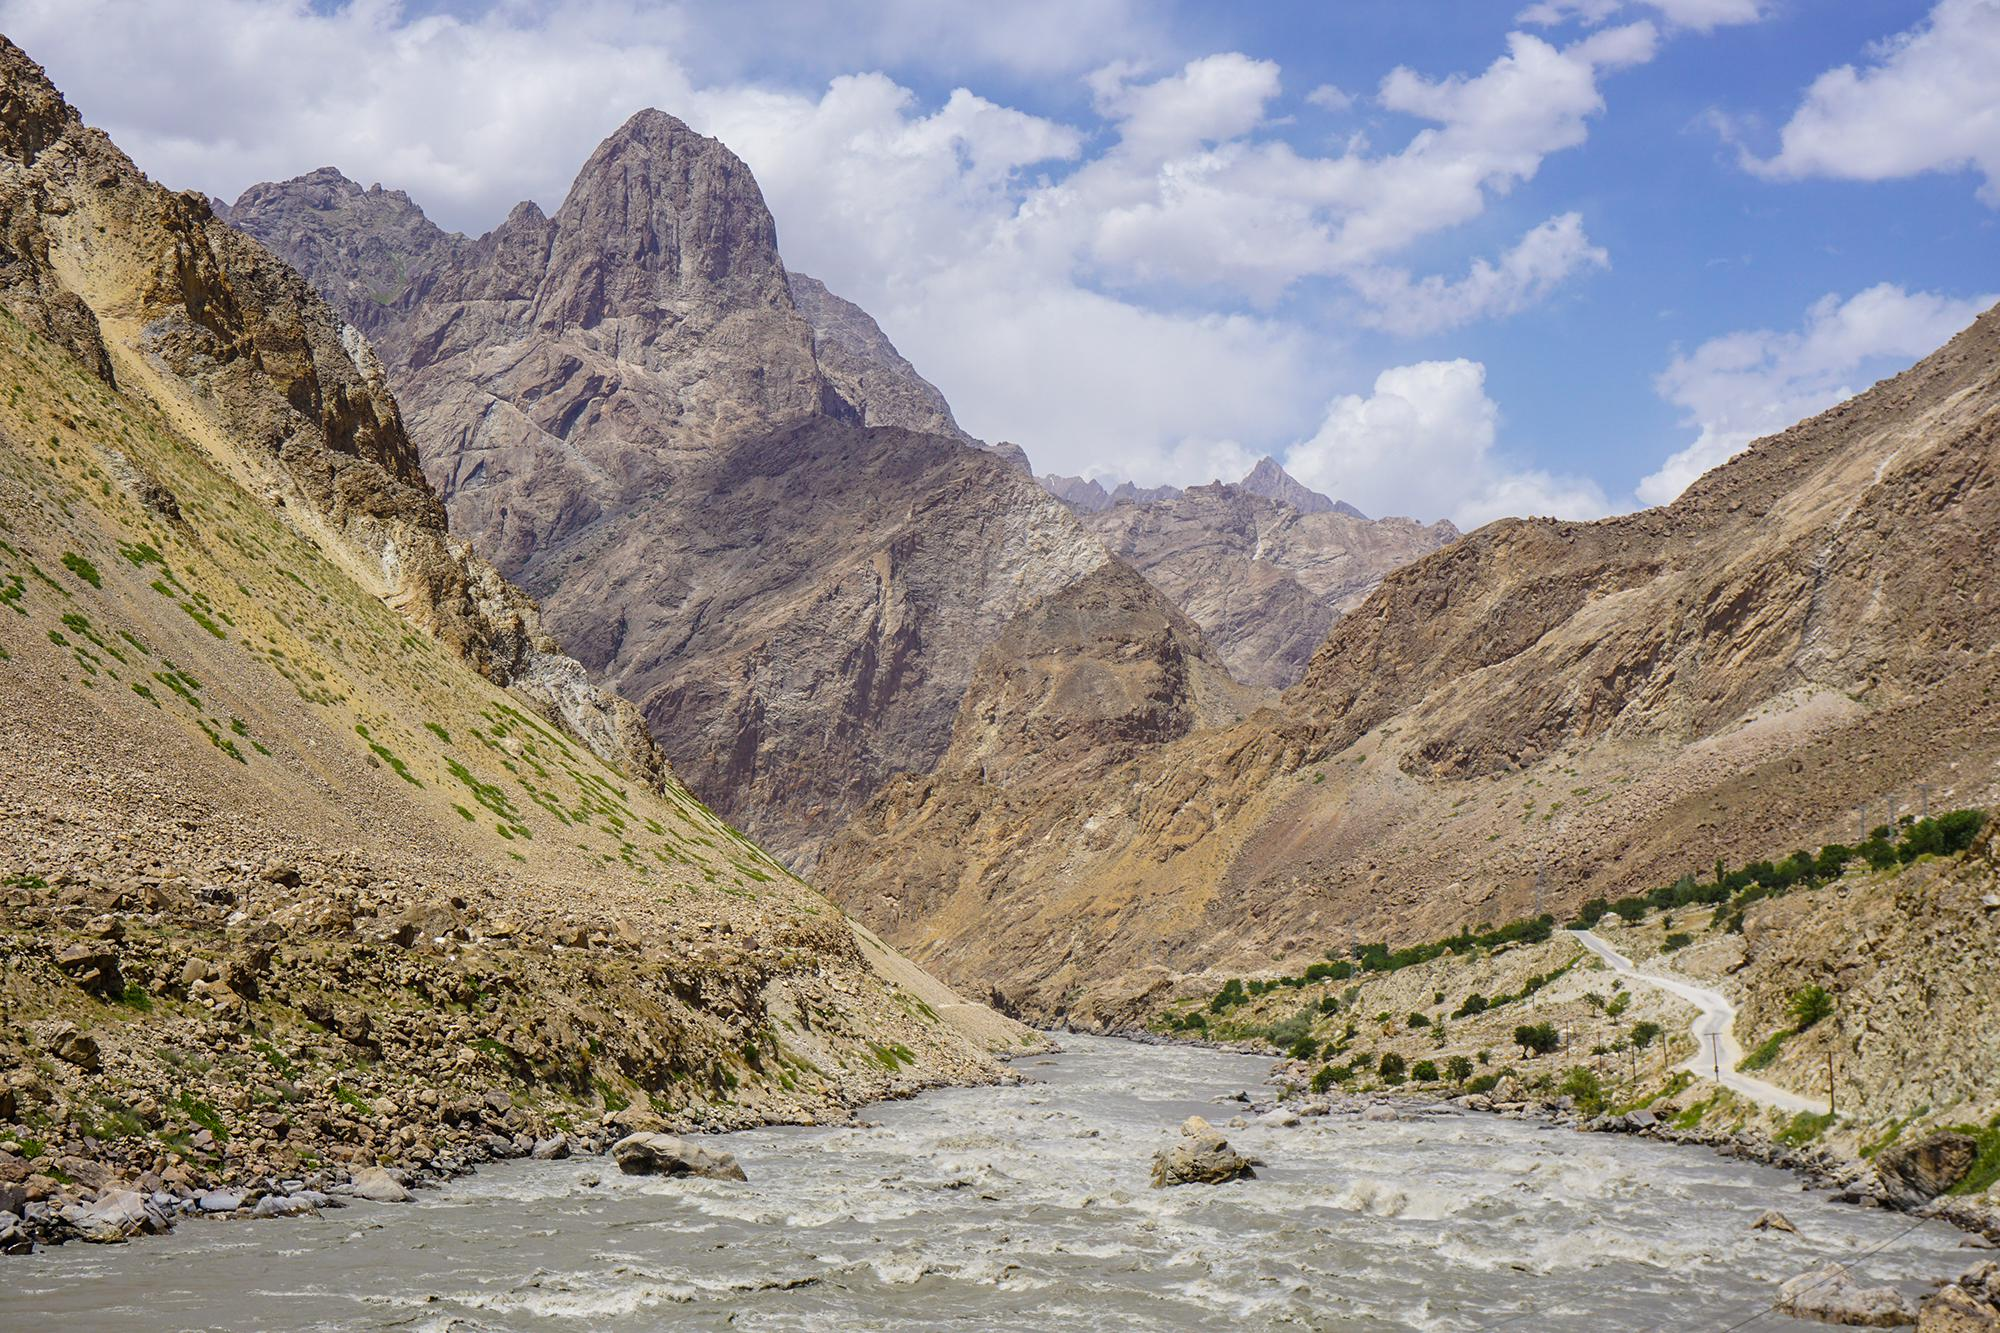 The mighty Panj River. On the left is Afghanistan. On the right is the Pamir Highway and our route through Tajikistan.